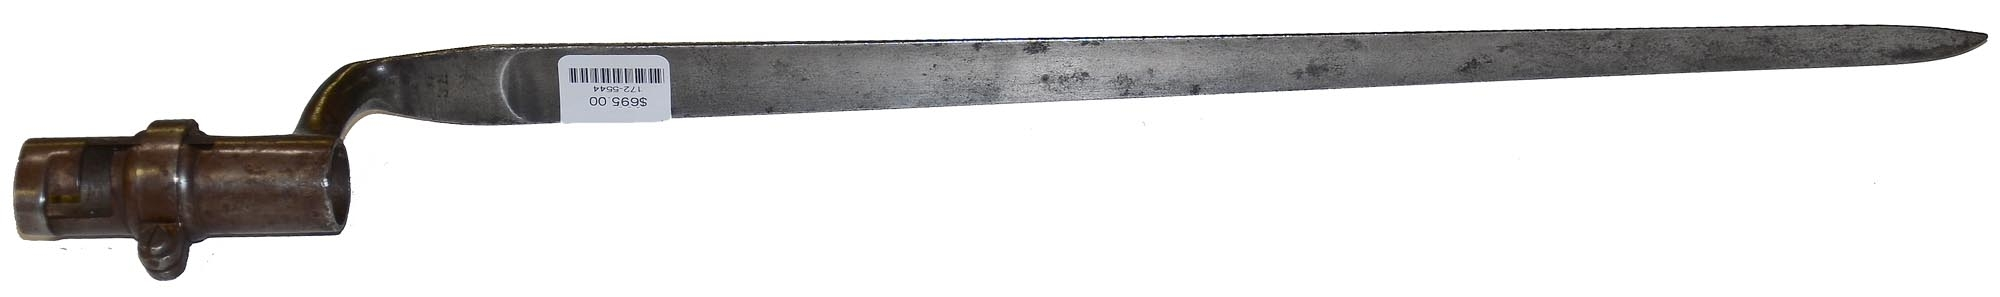 NICE MODEL 1851 CADET SOCKET BAYONET